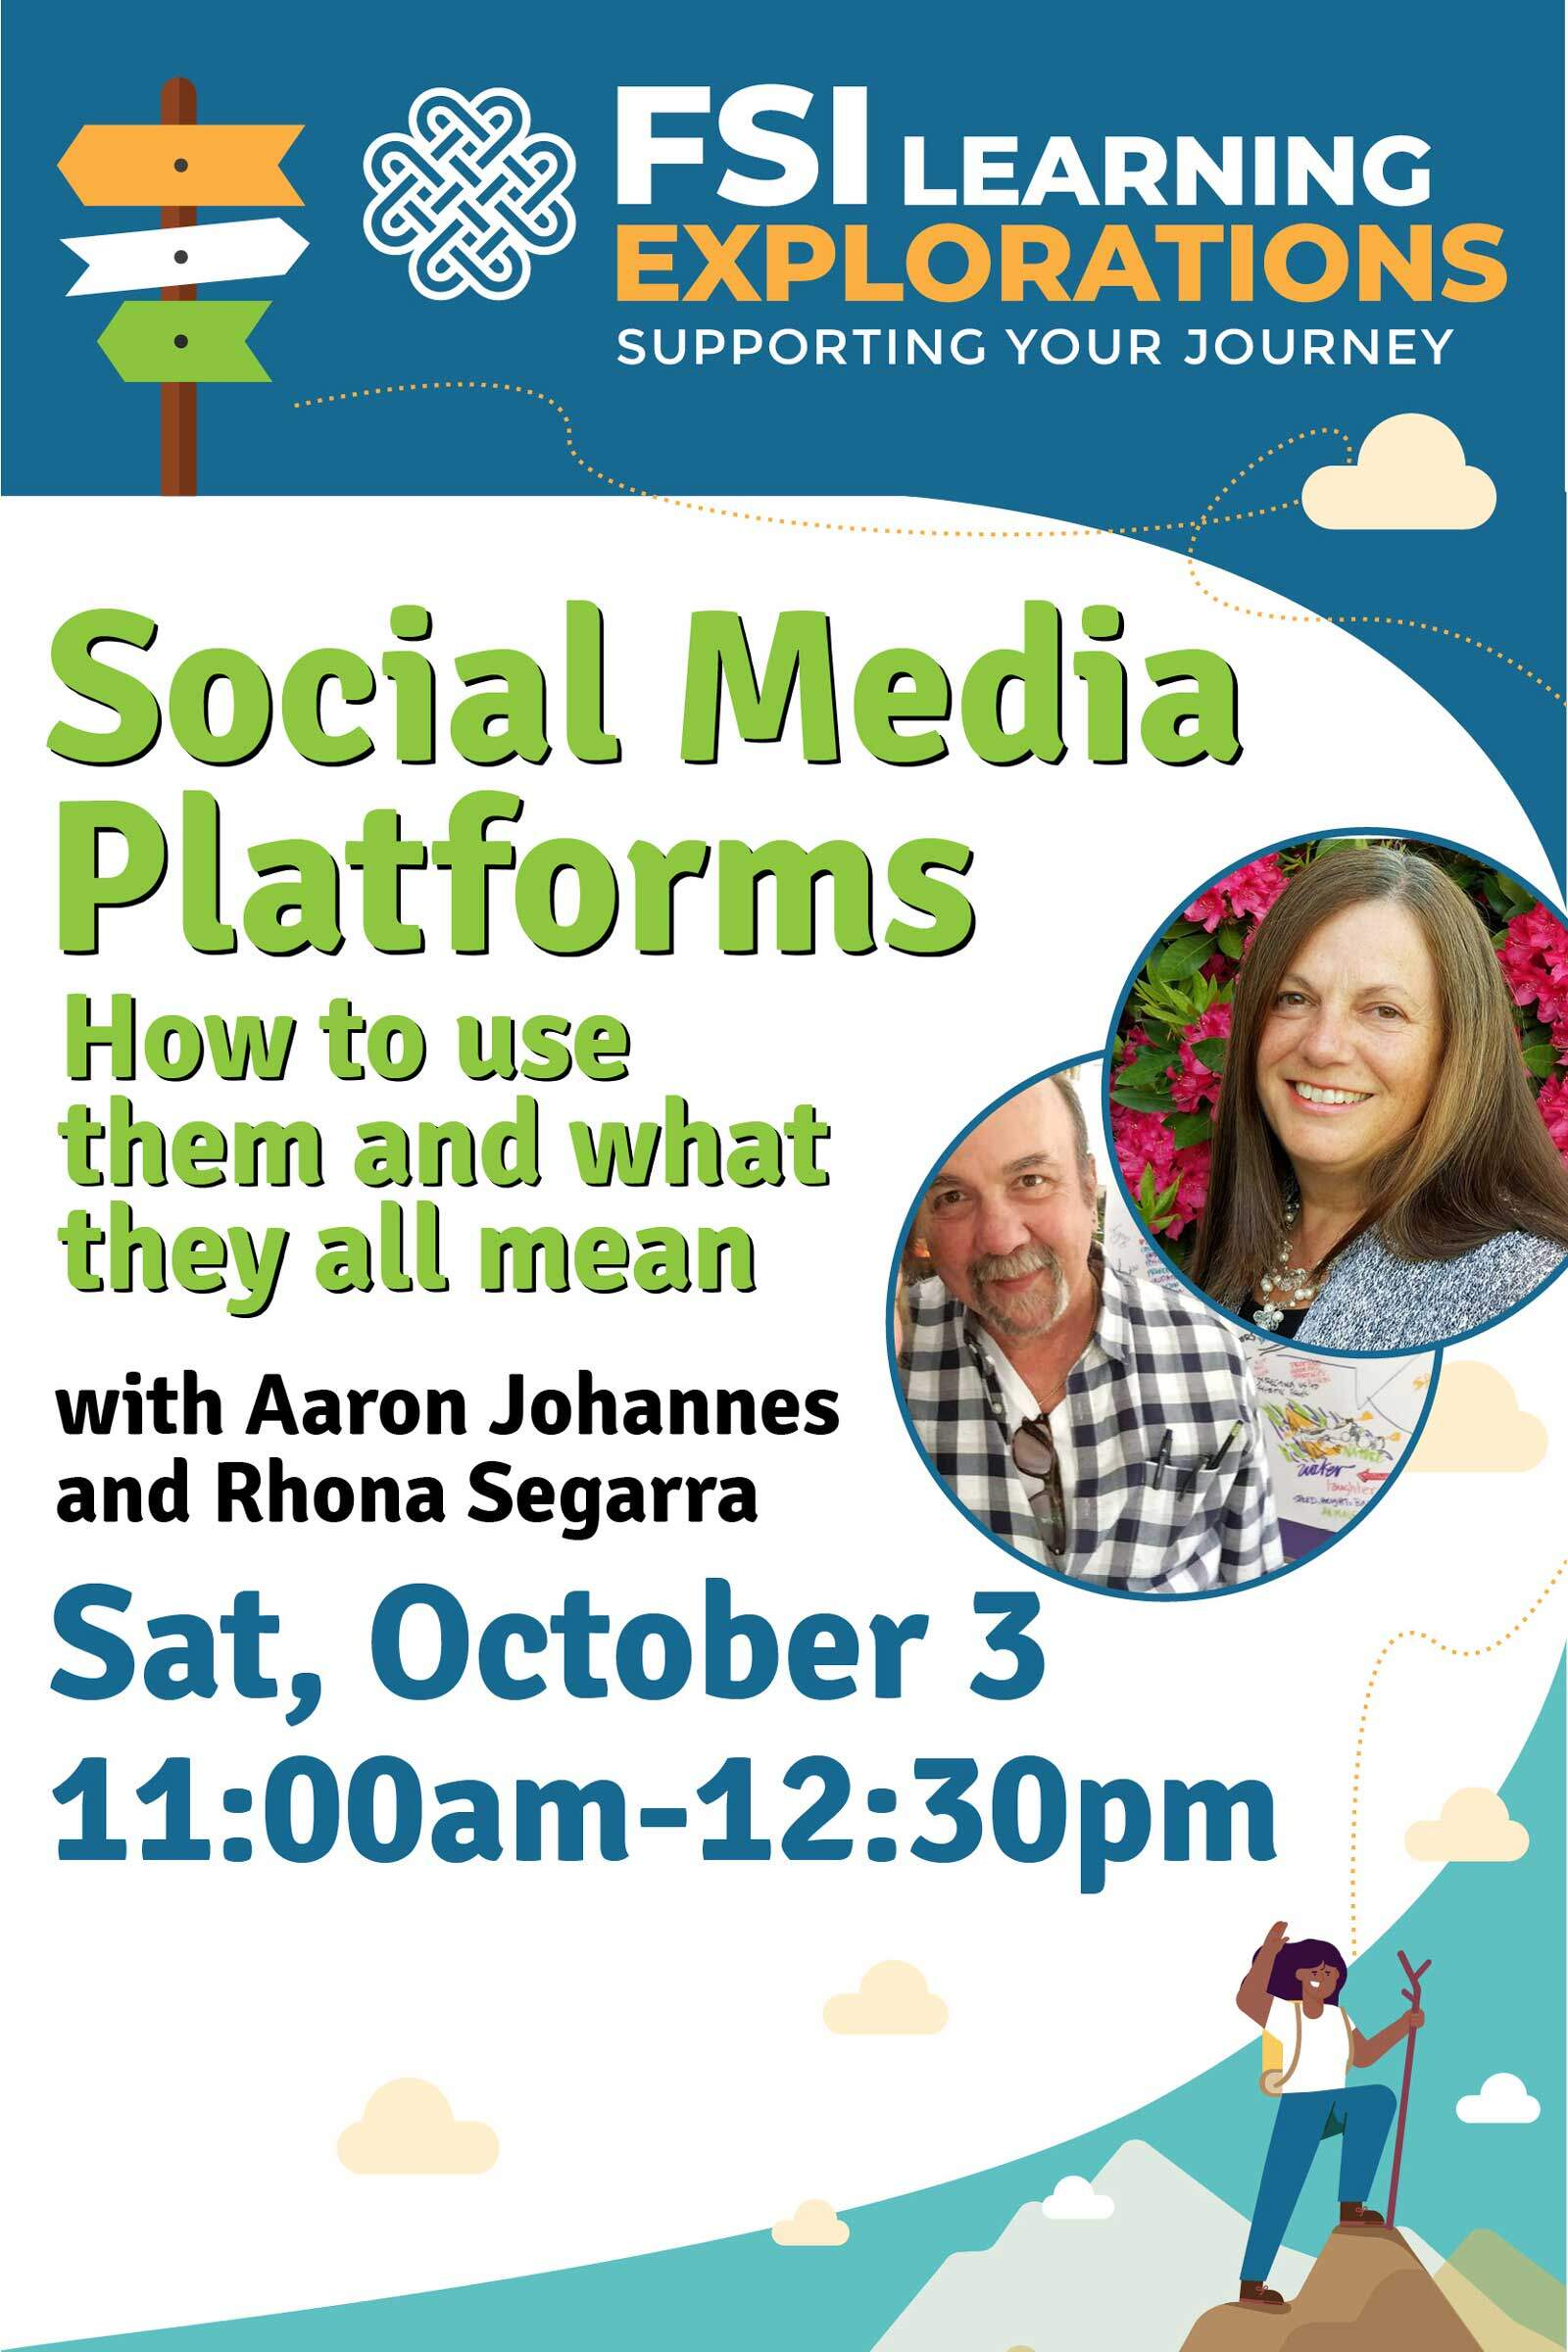 FSI Learning Explorations -Social Media Platforms - How to Use Them and What They All Mean Part